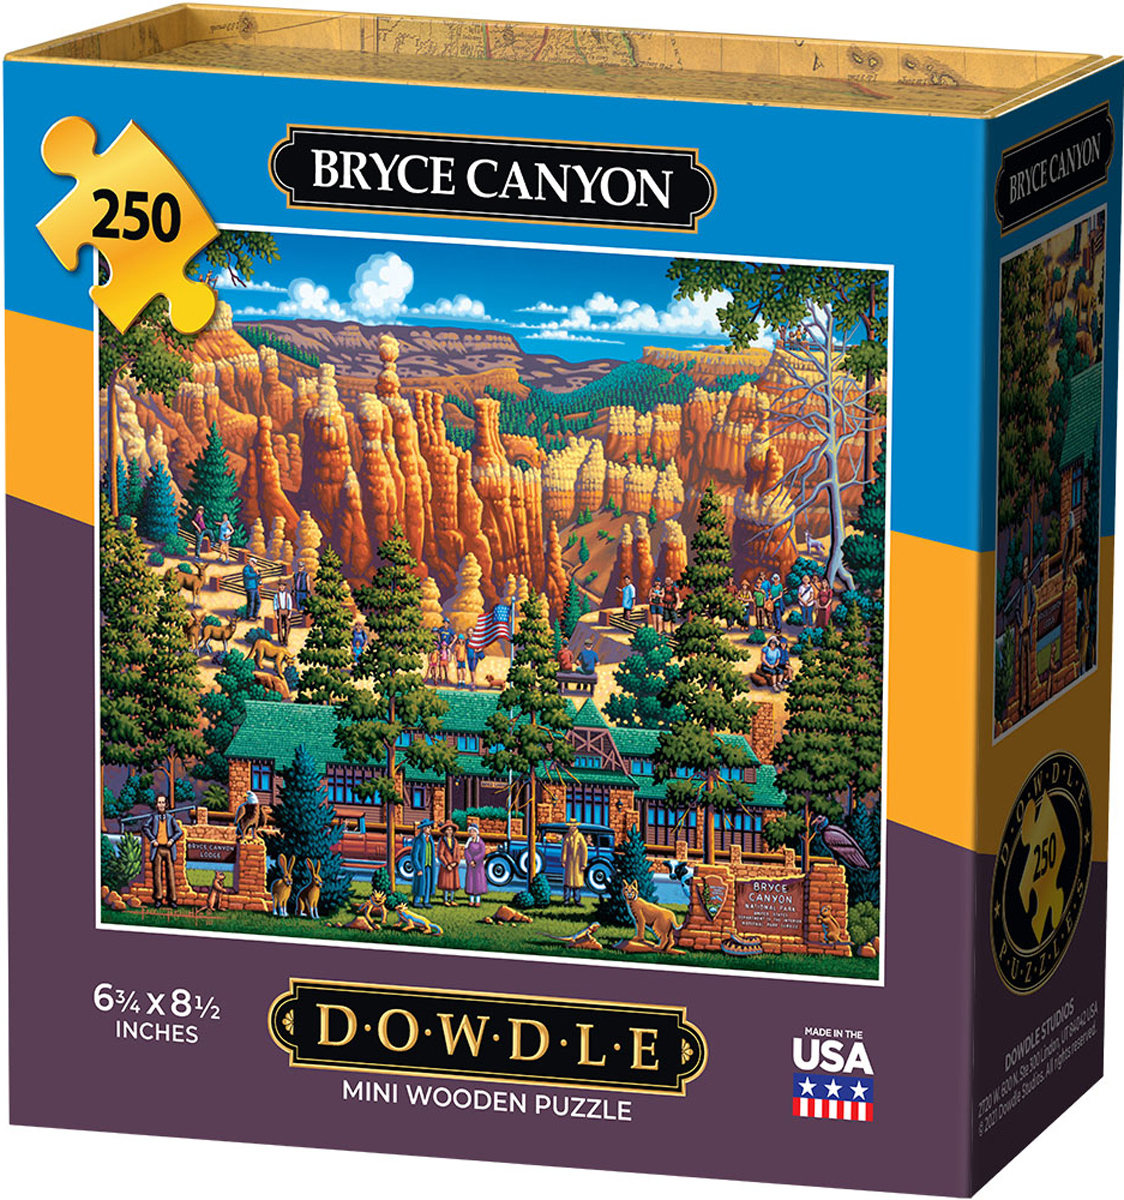 Bryce Canyon National Park National Parks Jigsaw Puzzle